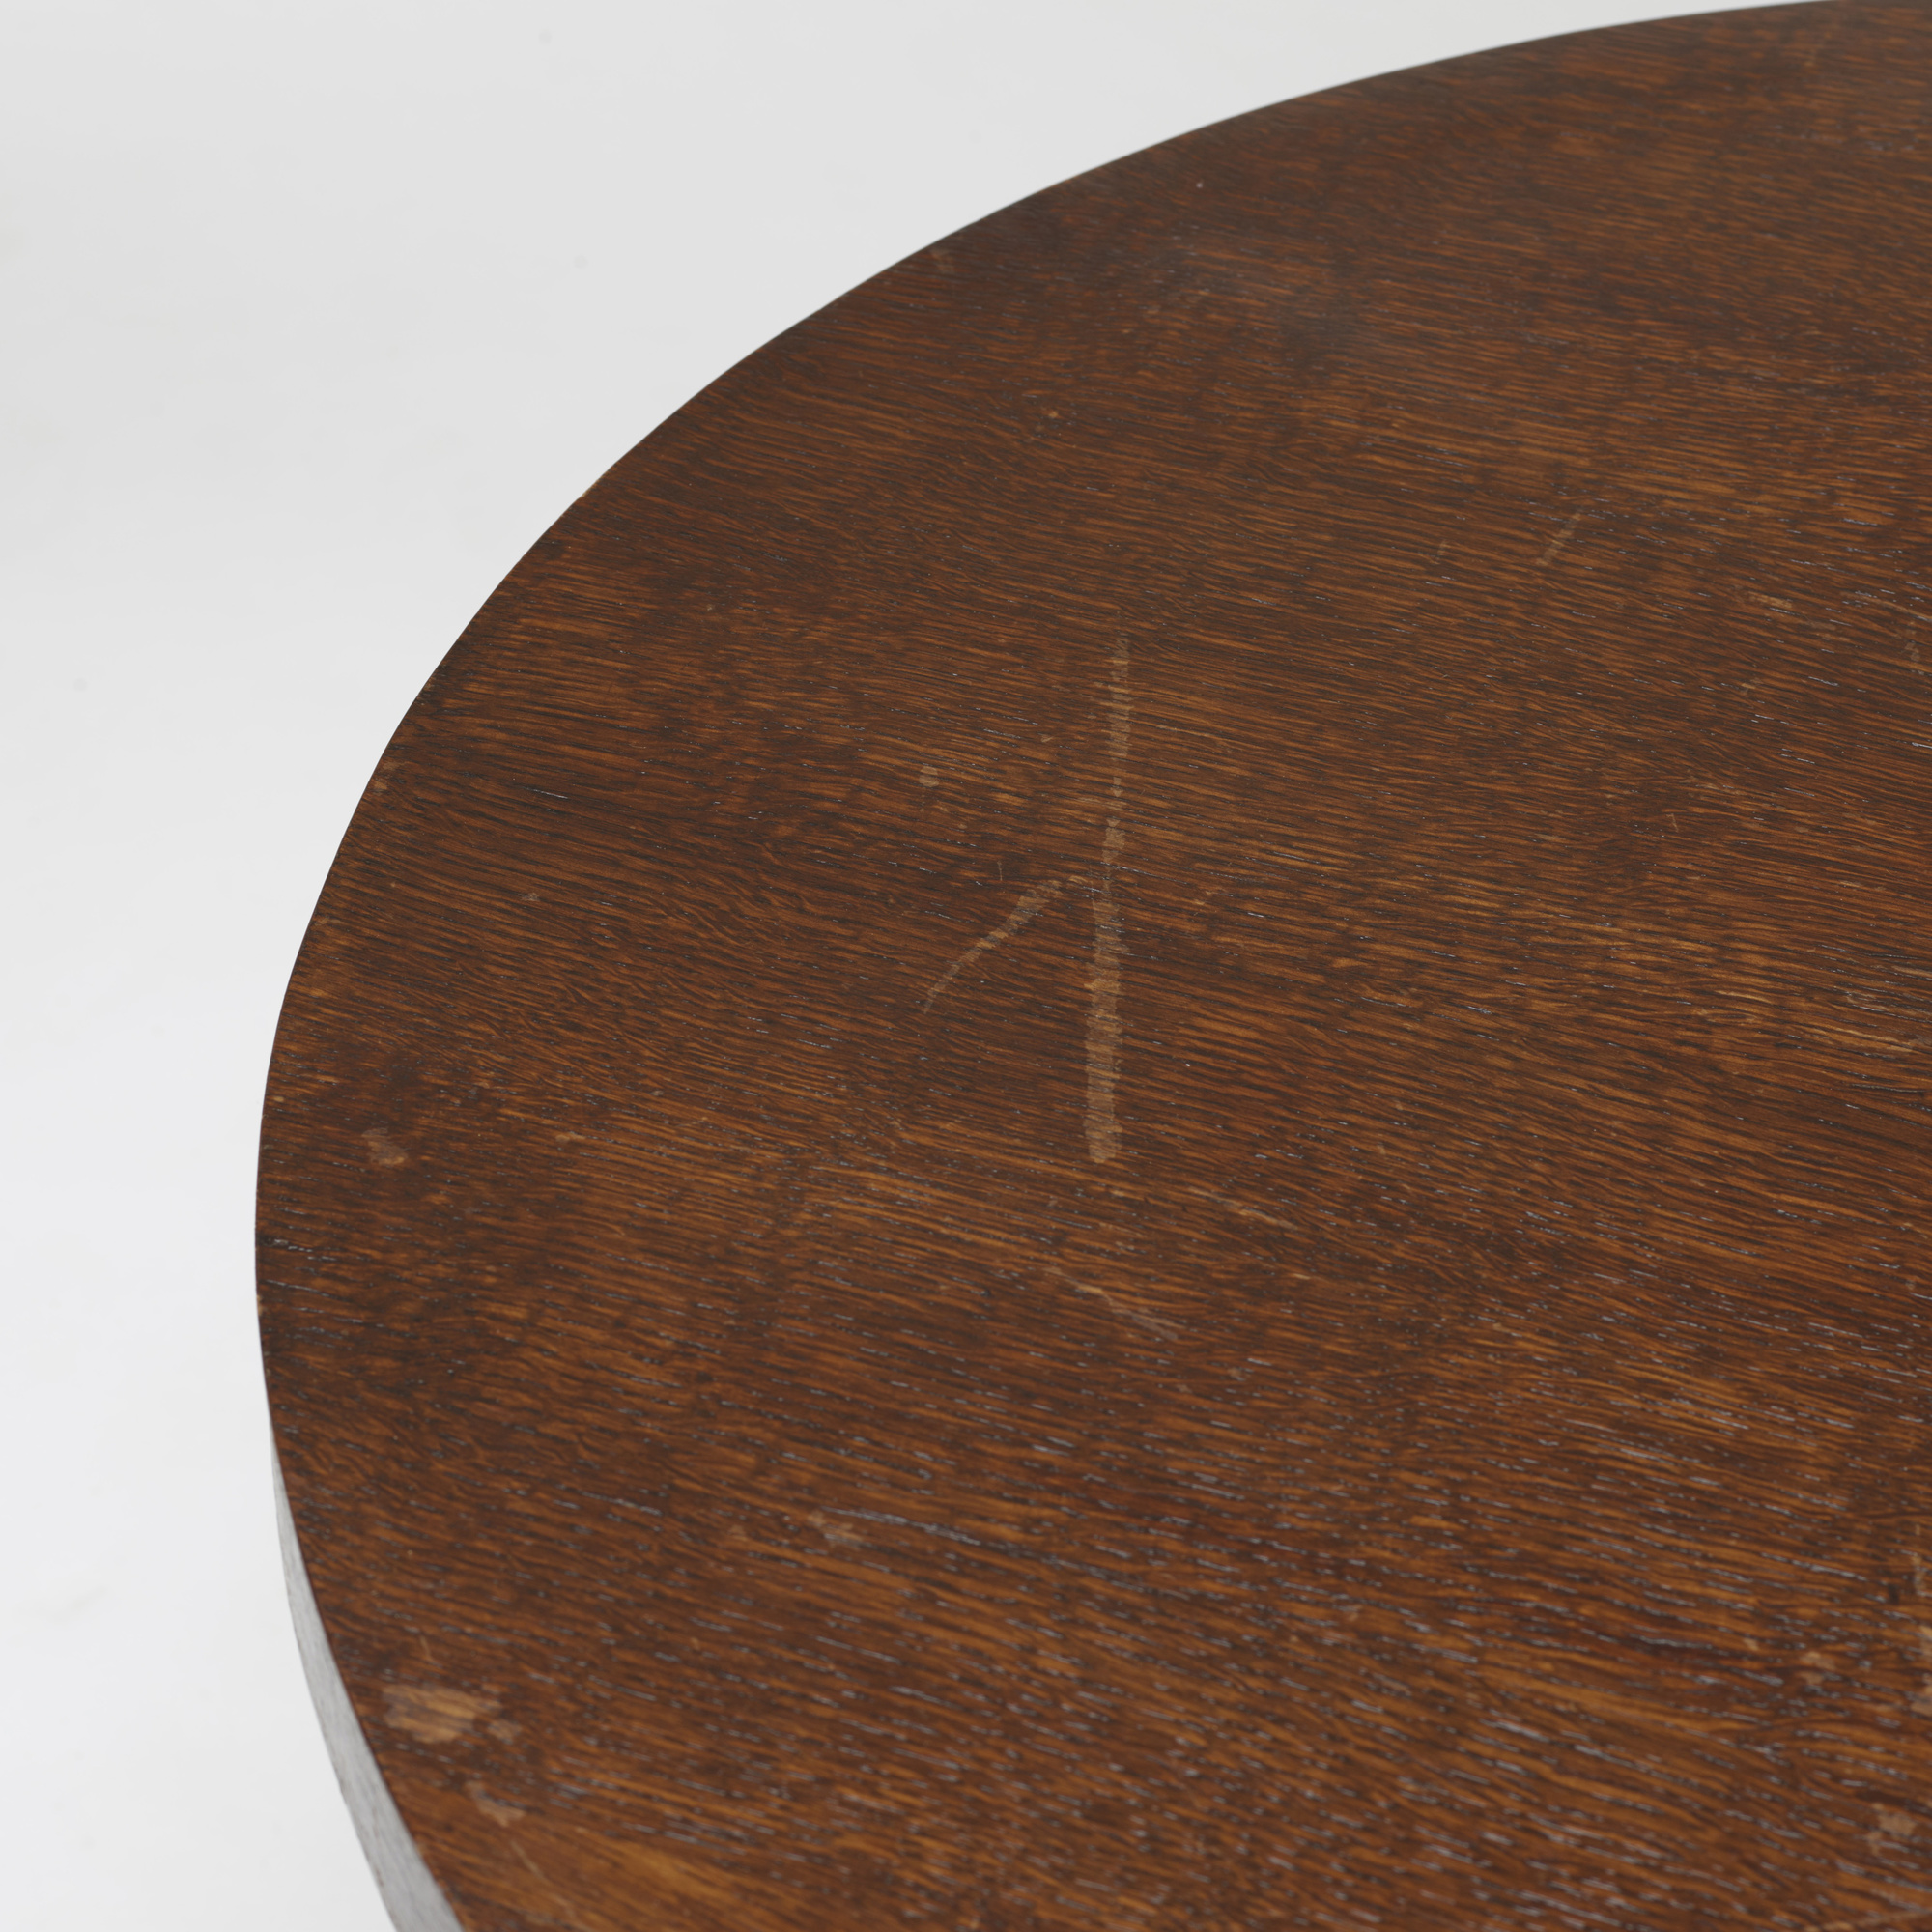 133: Art Deco / occasional table (3 of 3)